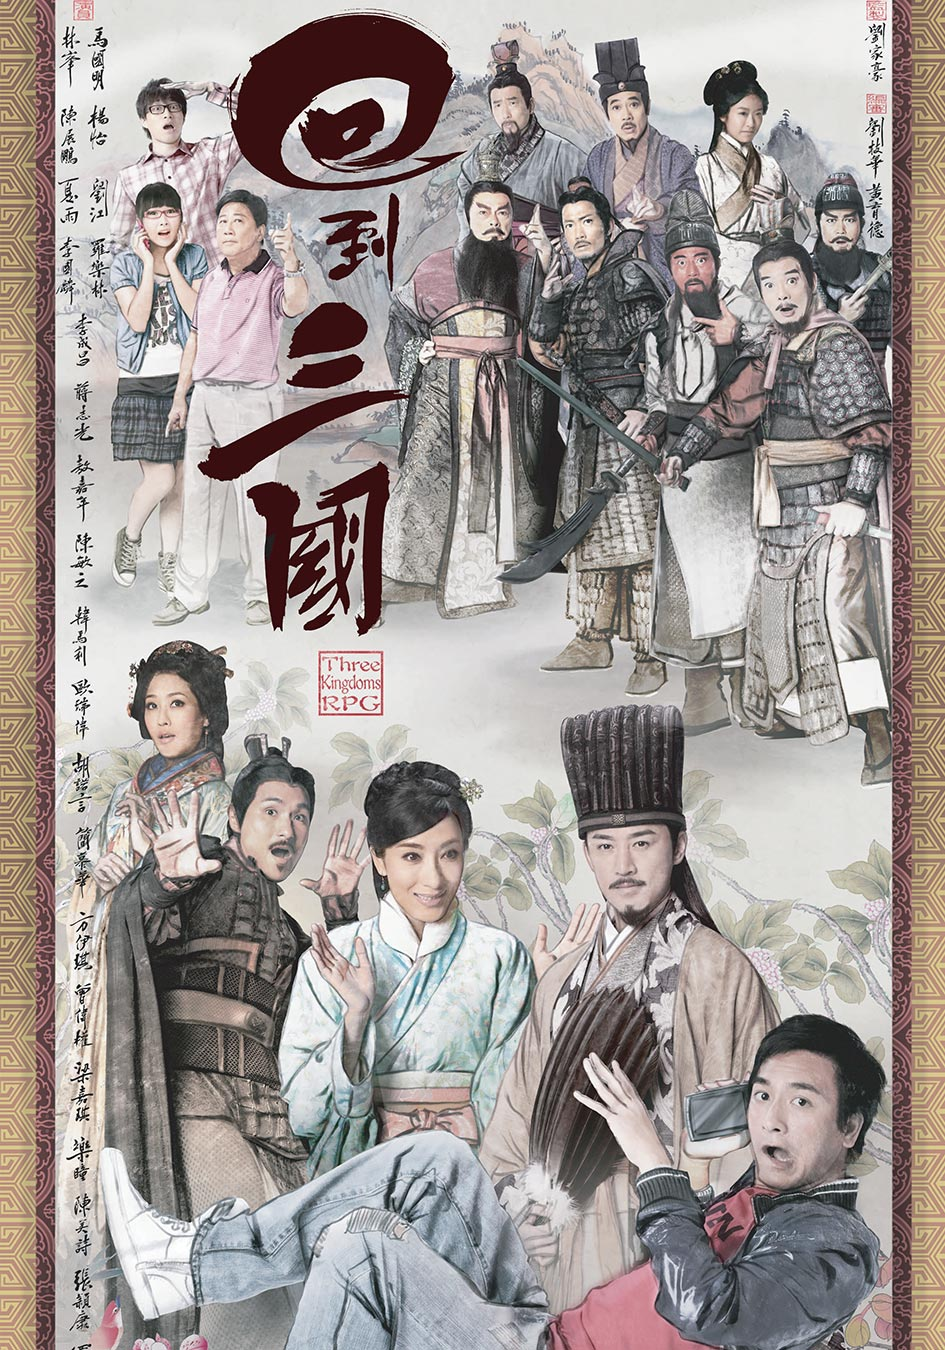 回到三國-Three Kingdoms RPG